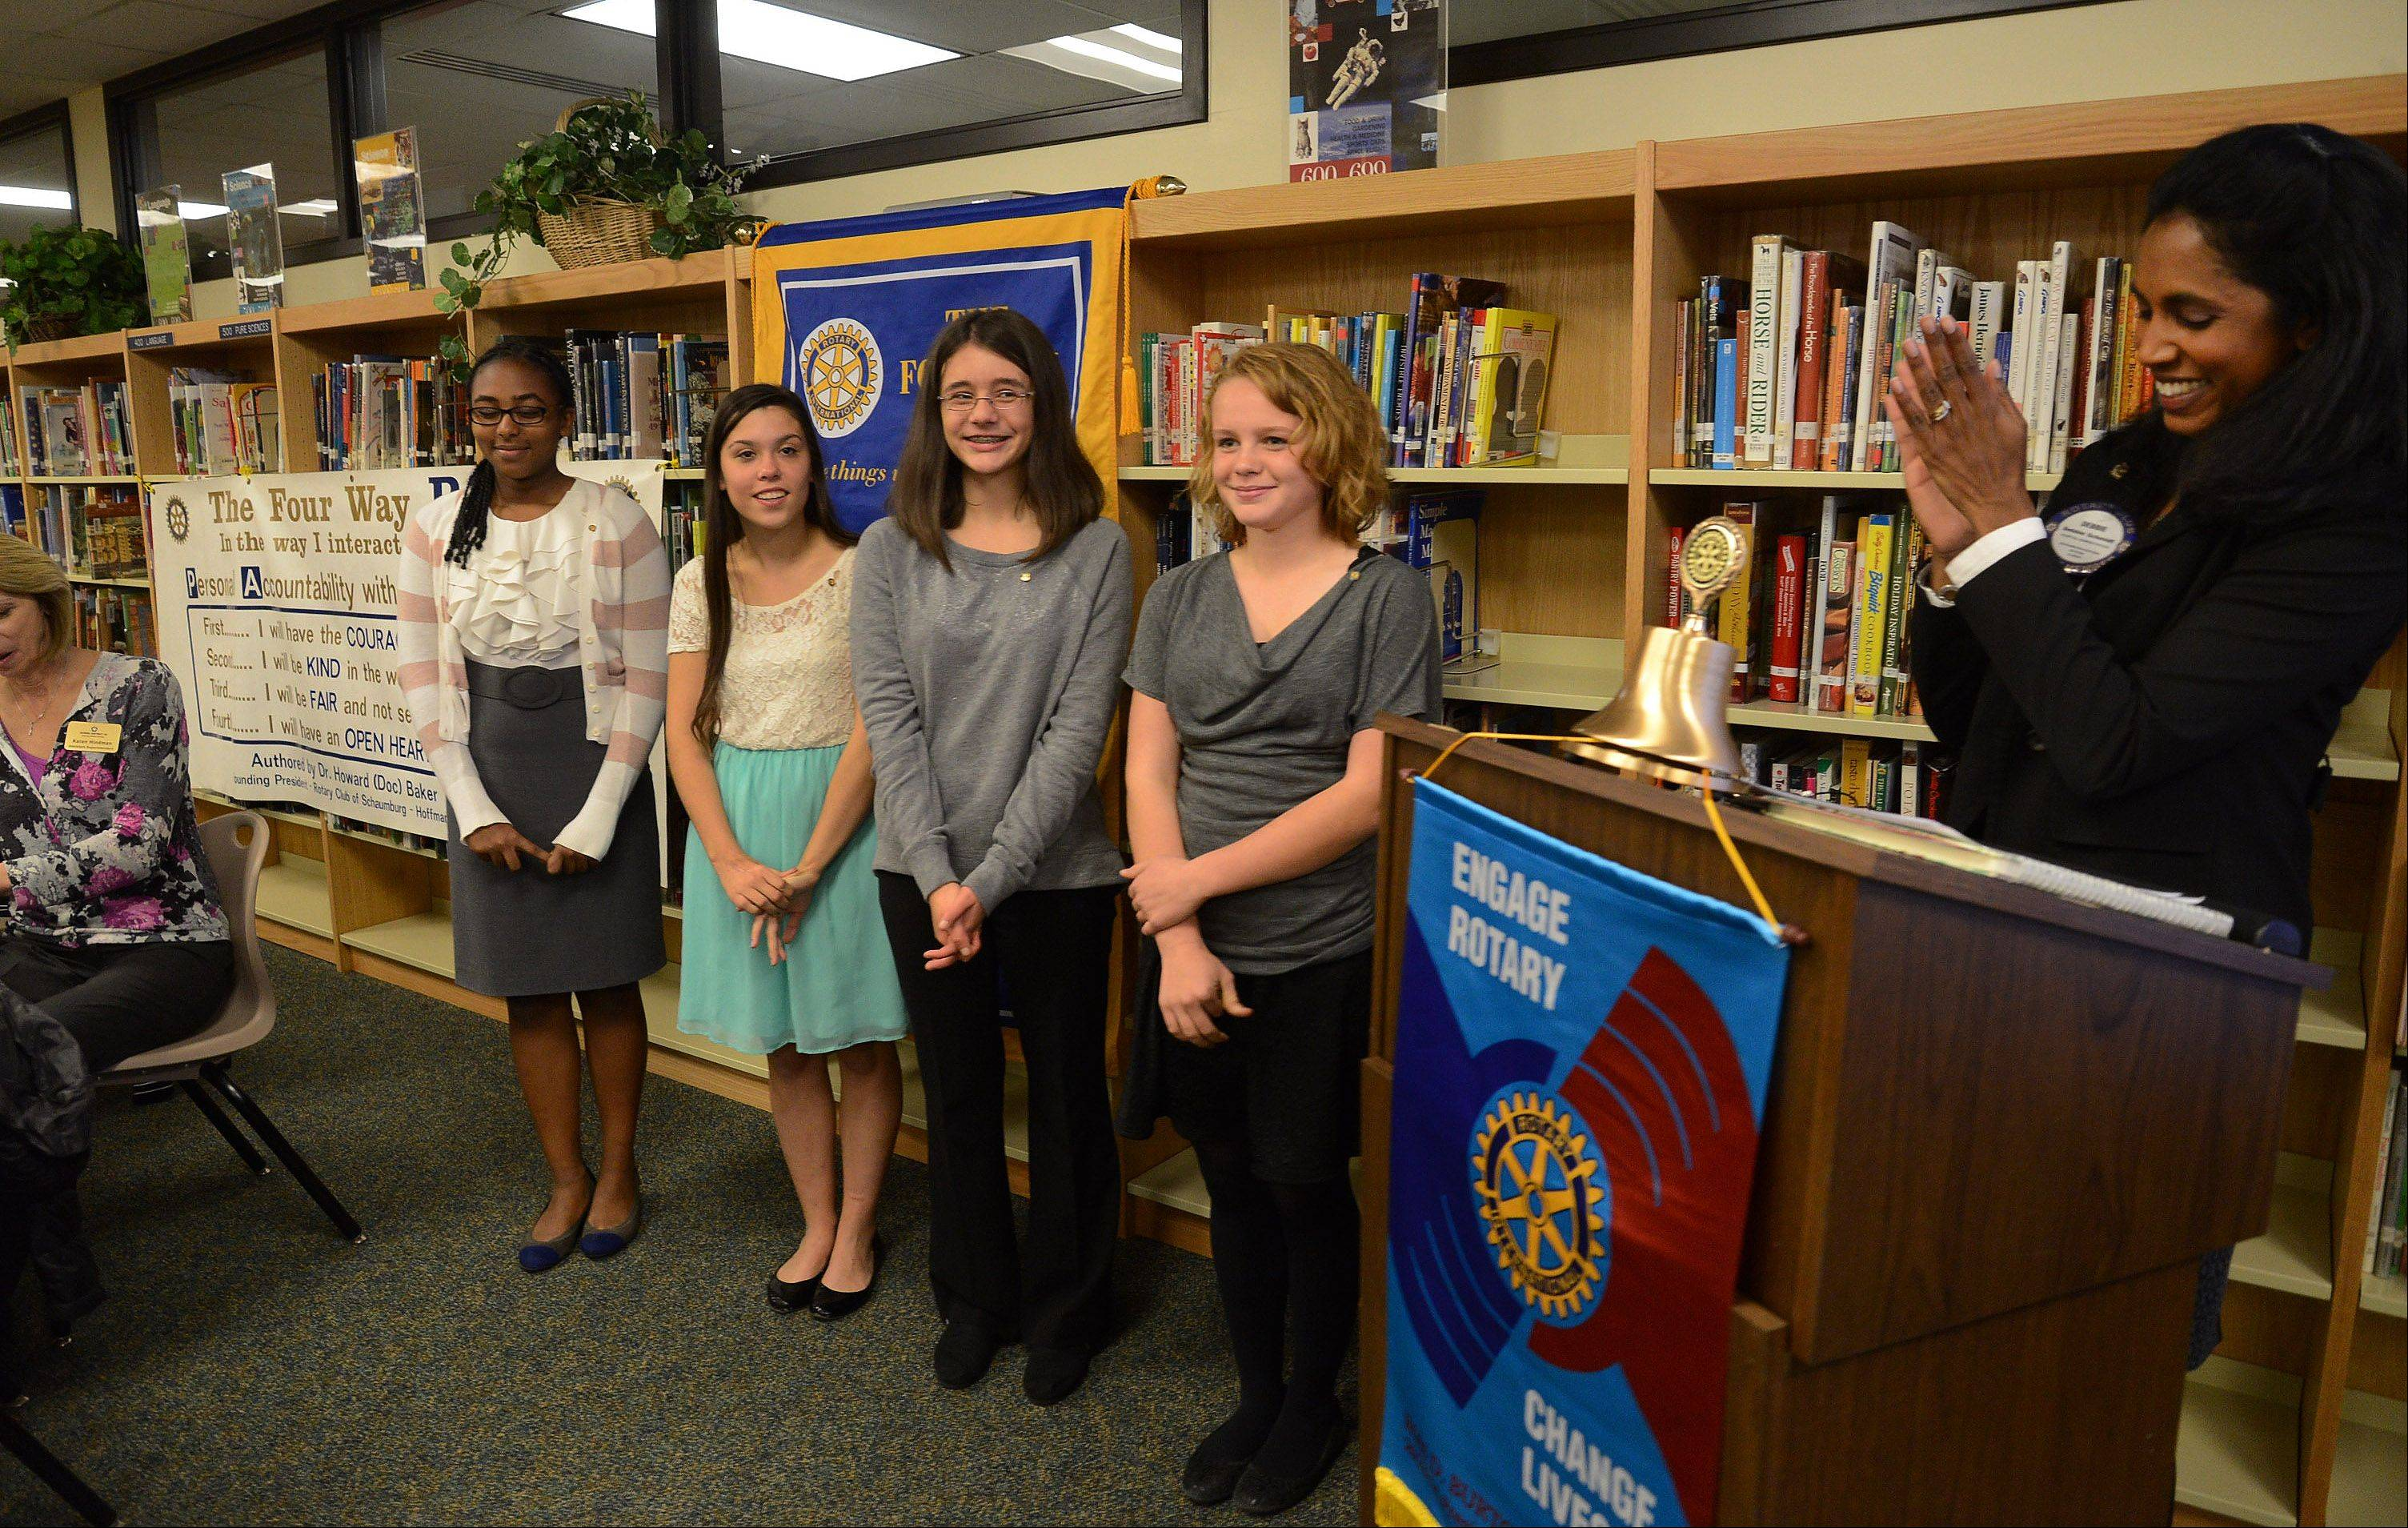 Keller Jr. High students from left, Keneni Godana, Morgan Krug, Allison Pariso and Amy Rodriguez are installed as Rotary members by Schaumburg/Hoffman Estates Rotary President Debbie Schmidt.